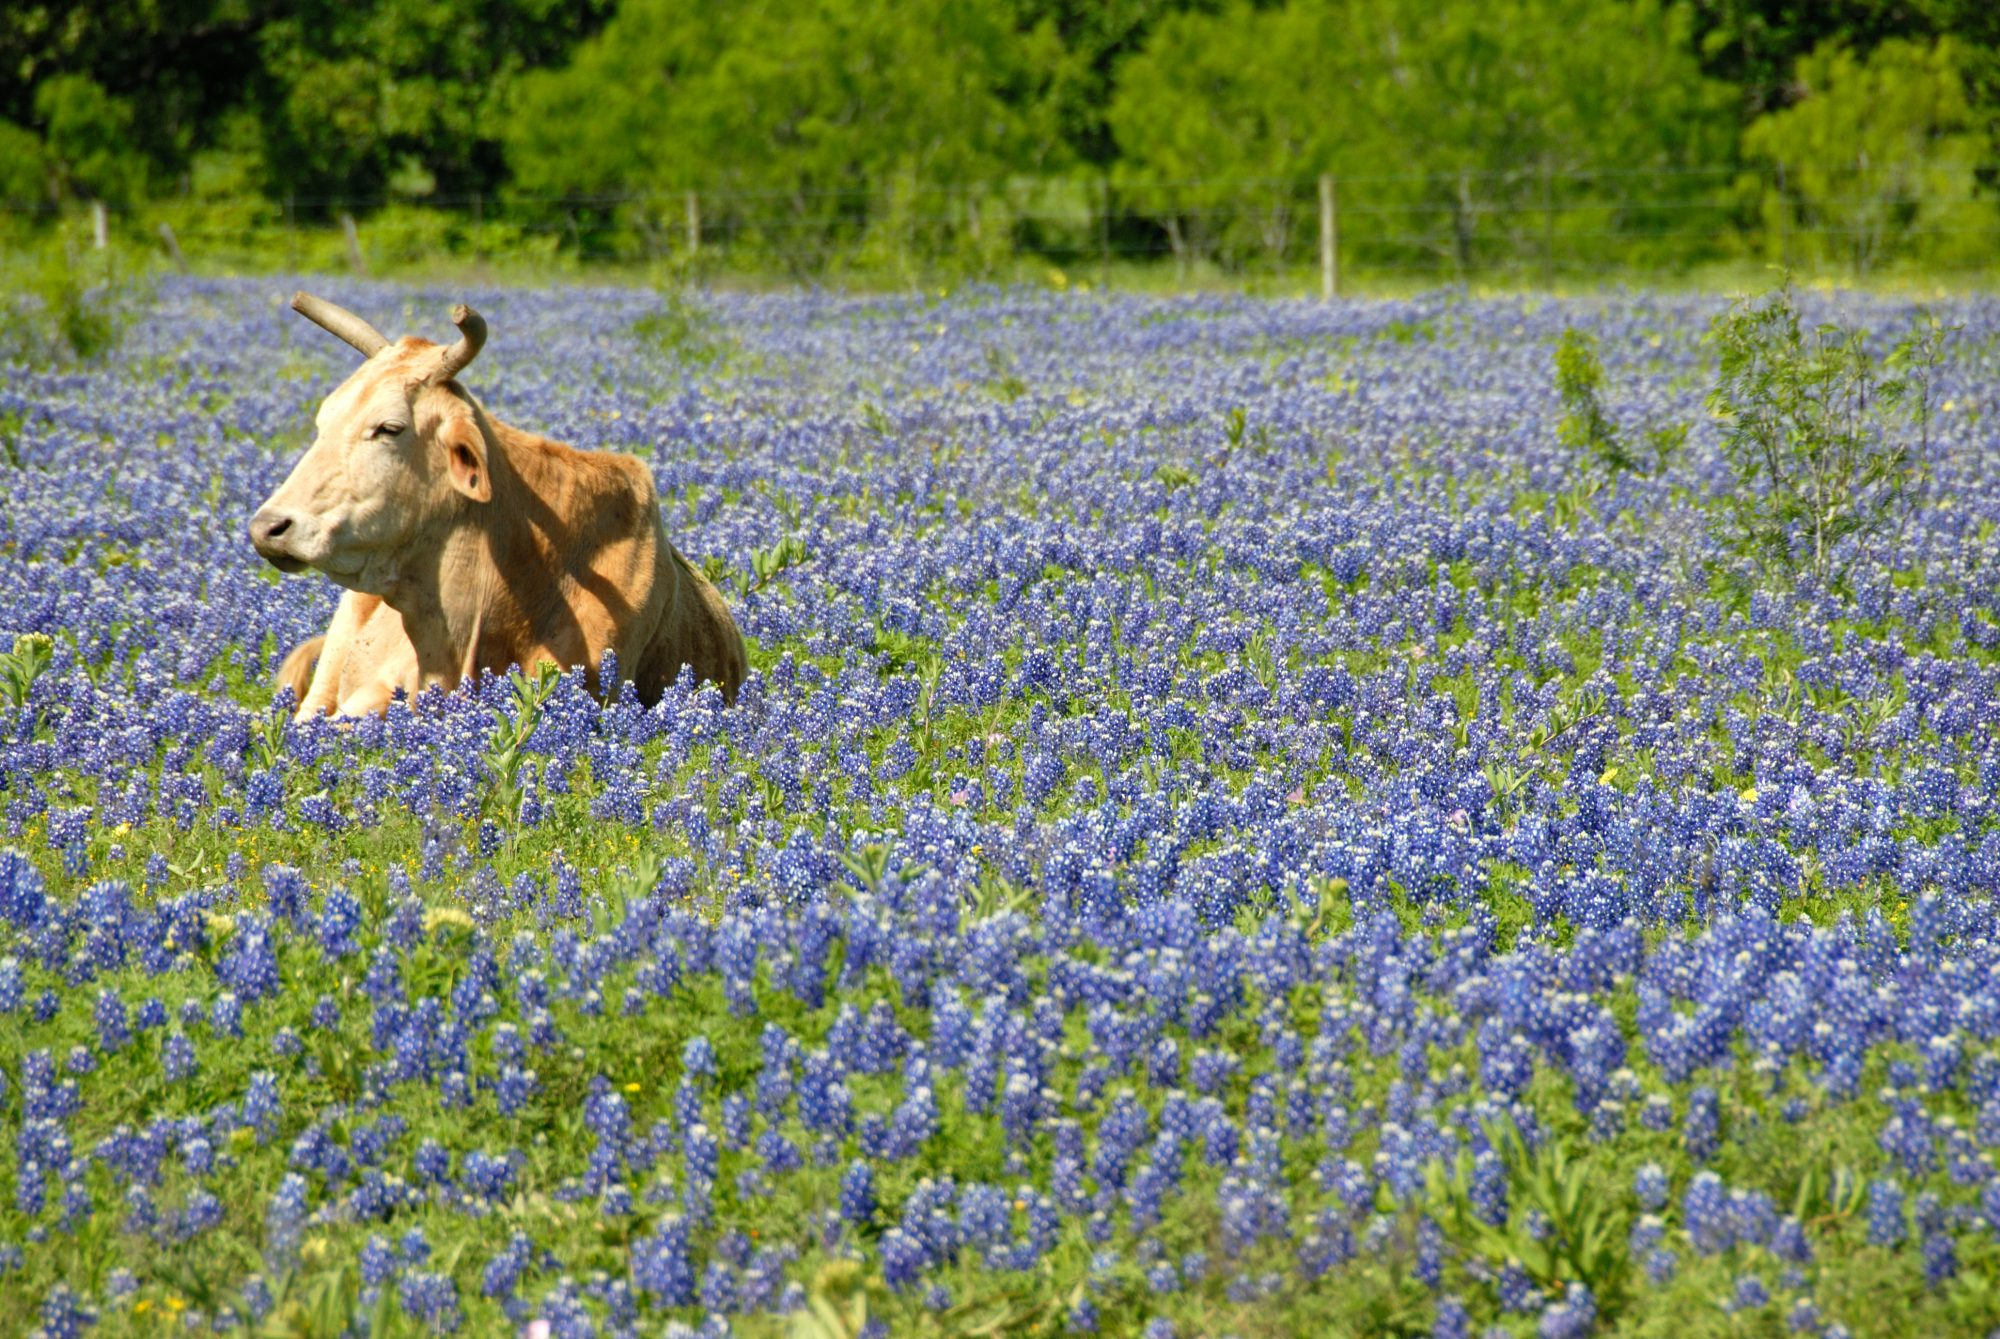 Bluebonnets and a Bovine